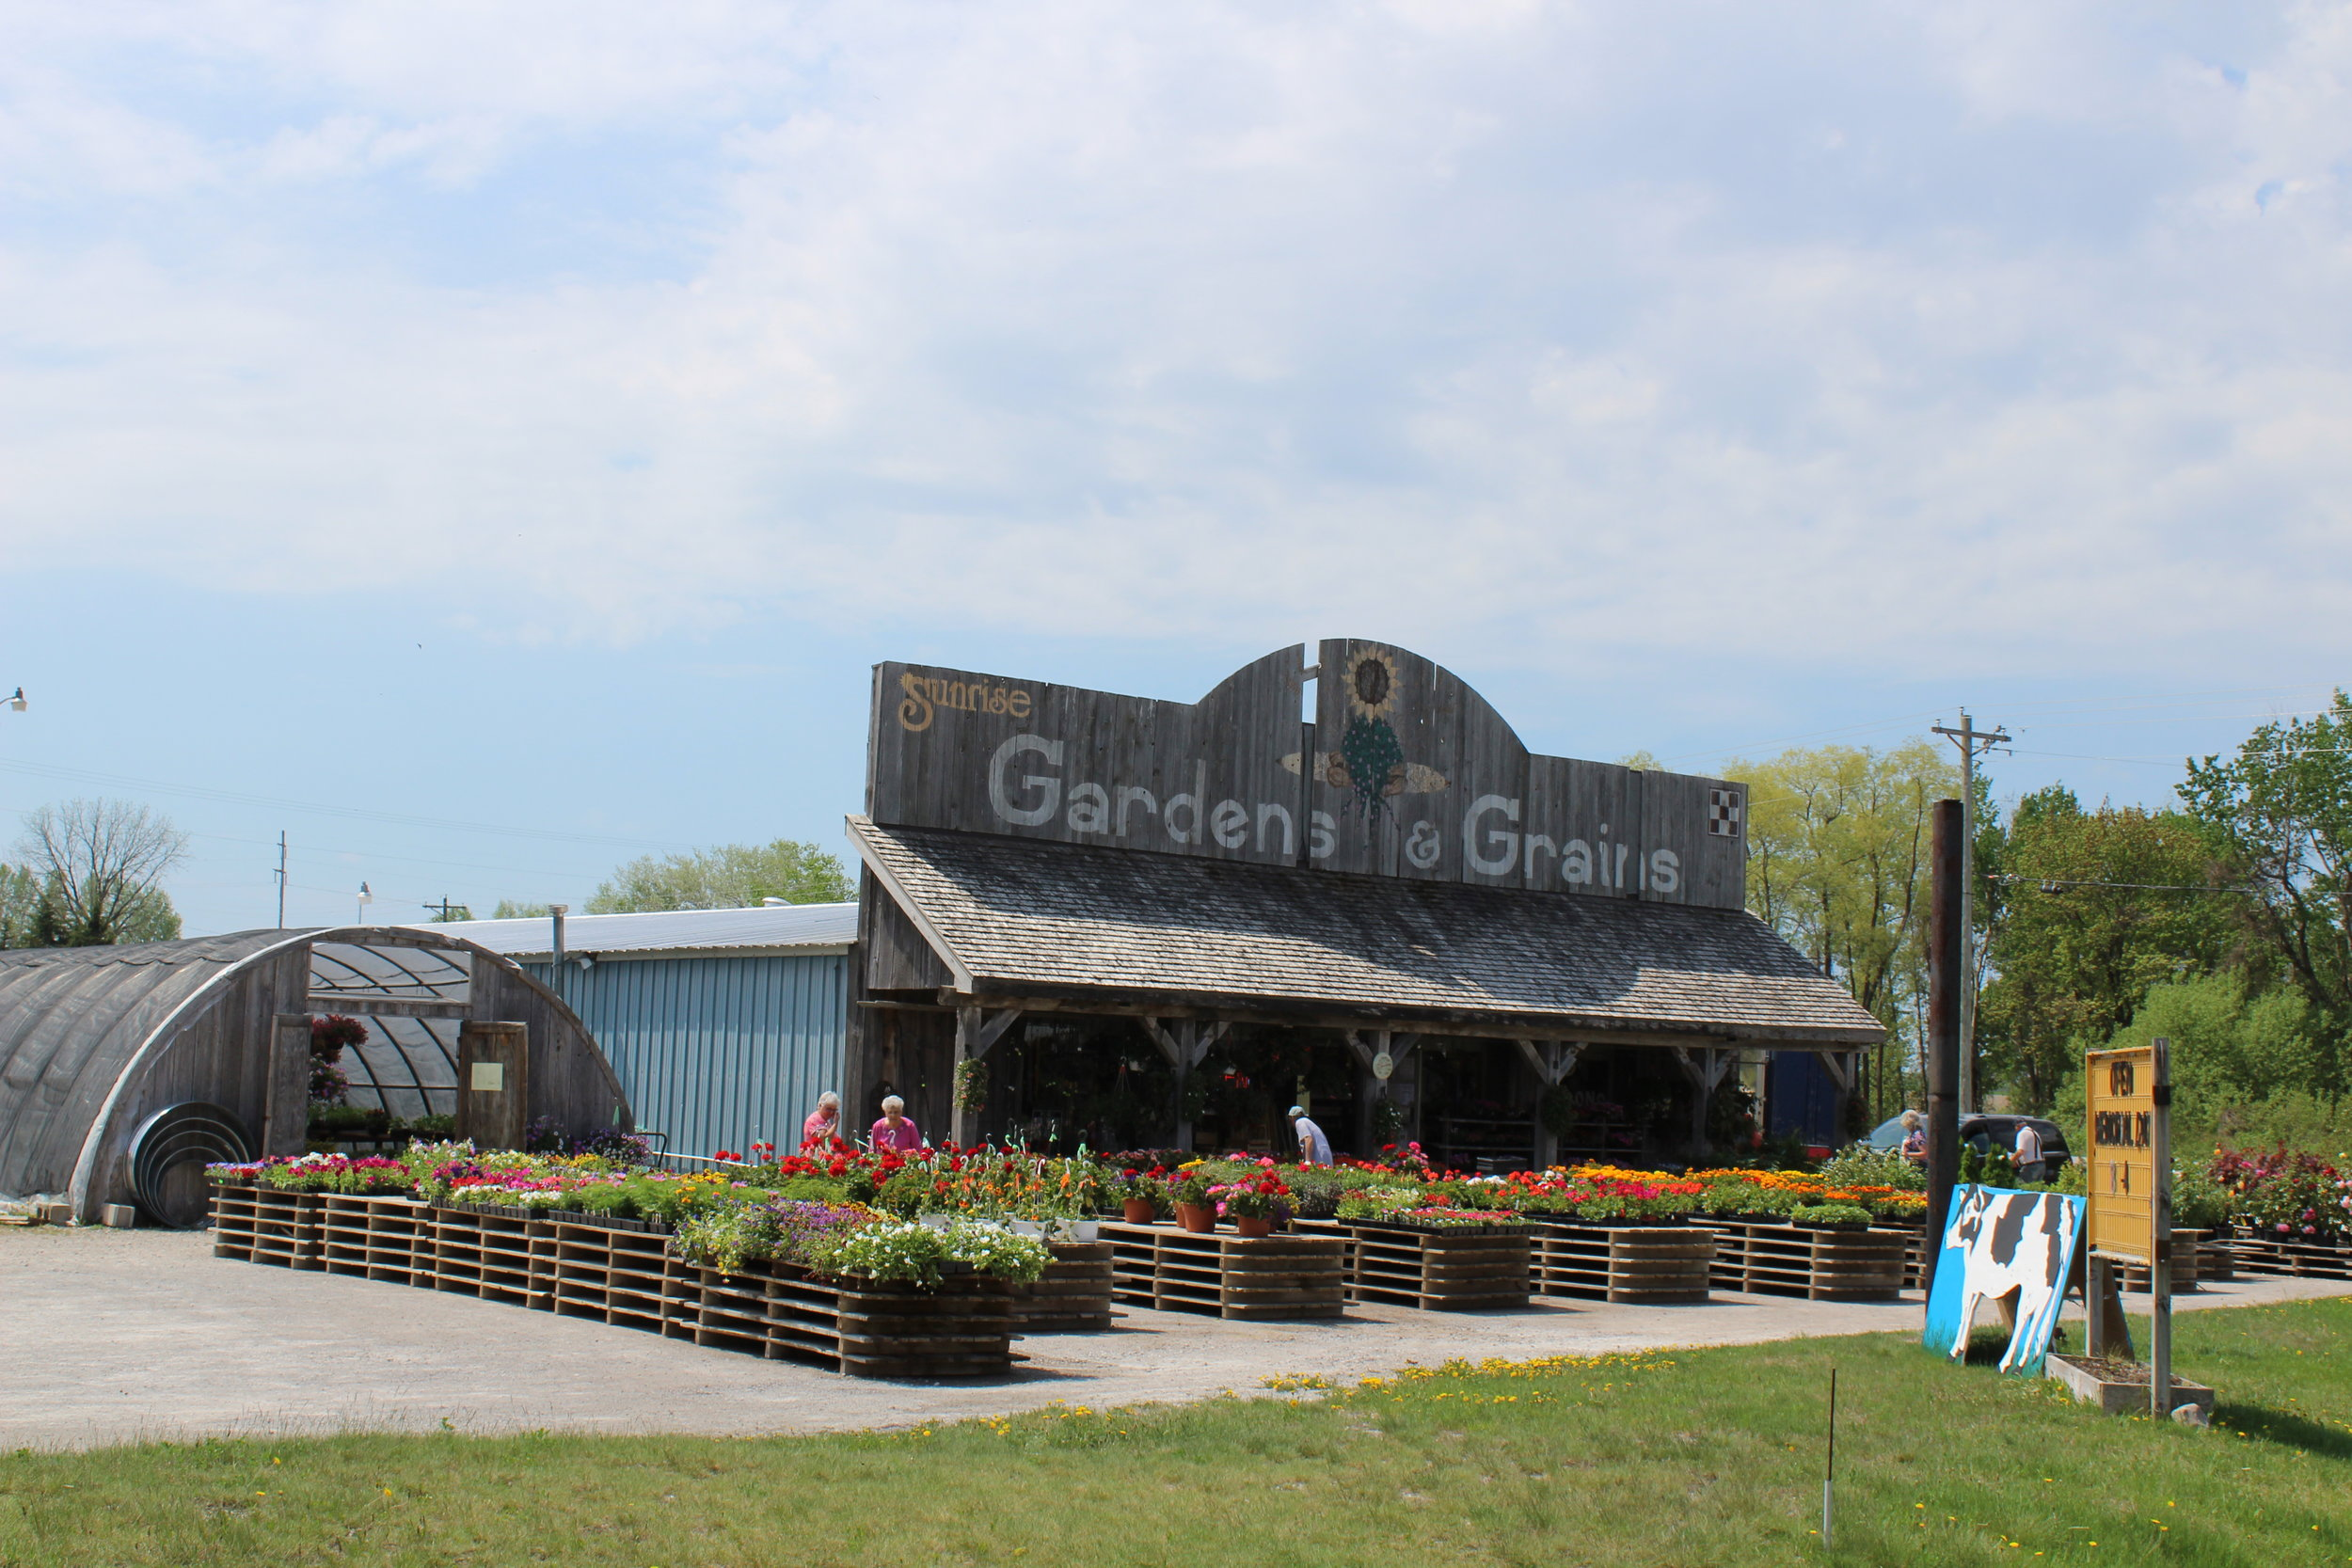 Sunrise Gardens & Grains Inc. - 3182 US 23 SouthRogers City, MI 49779(989) 734-2083